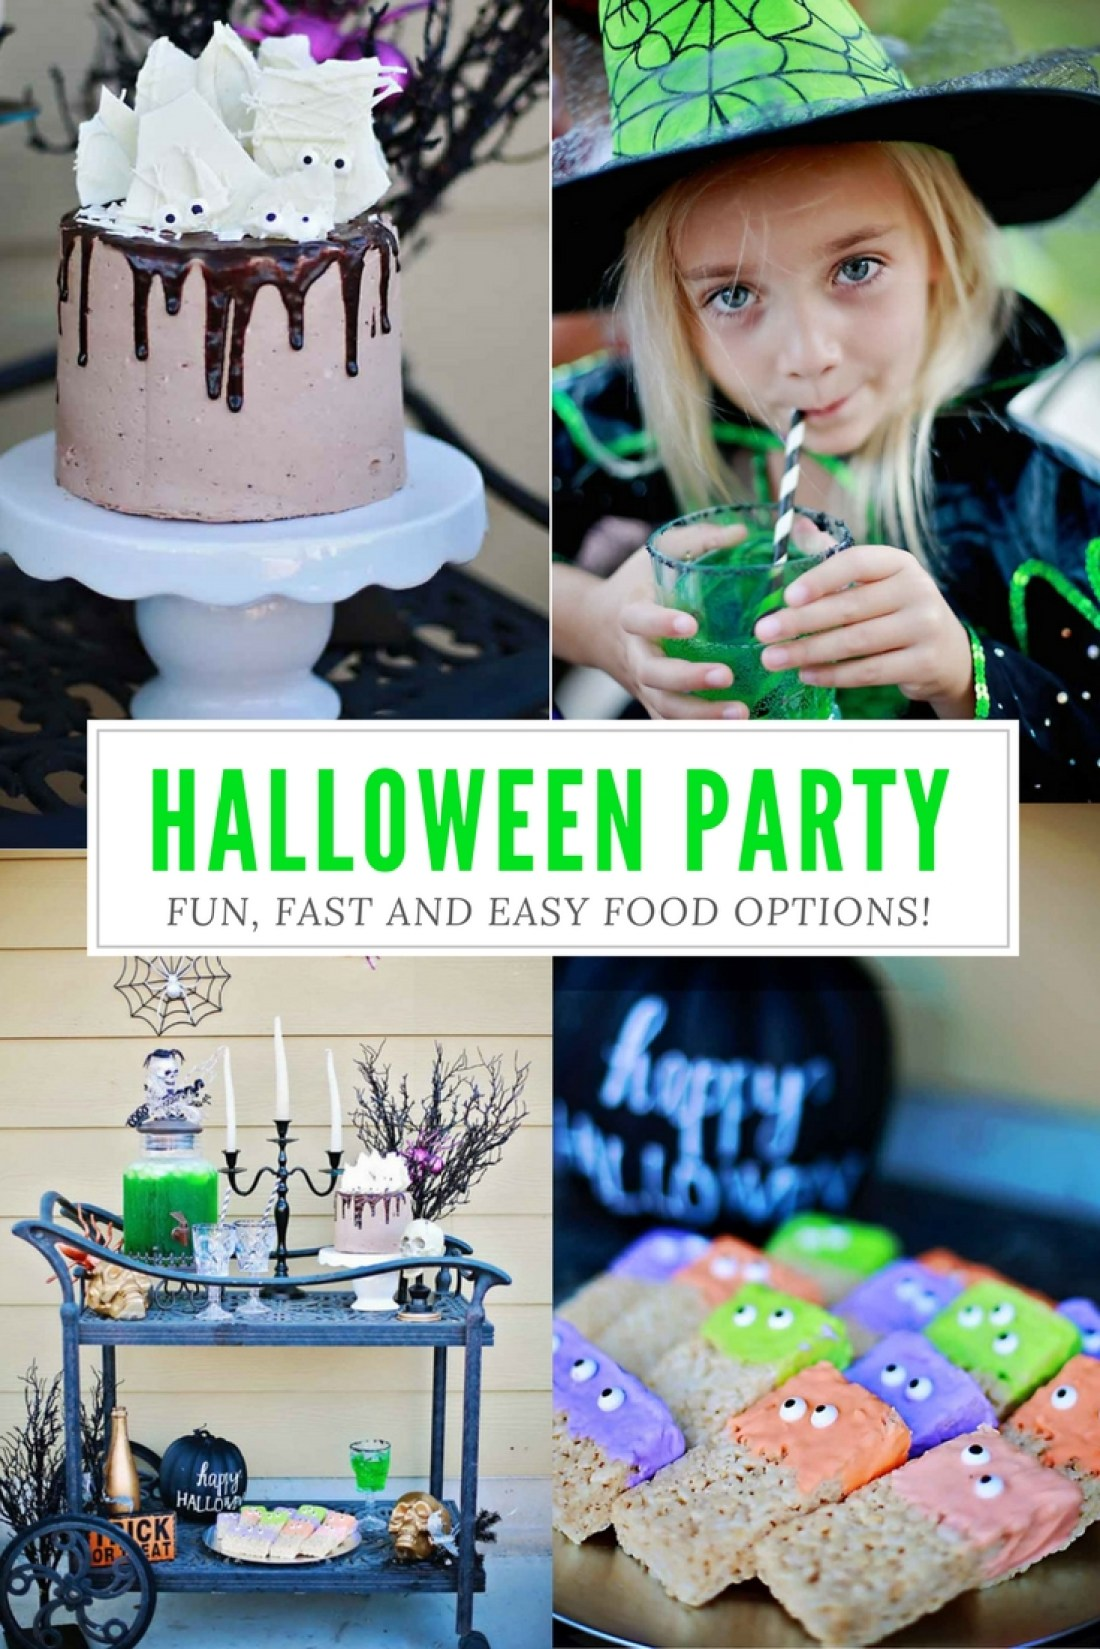 BEST FOOD Options for the ULTIMATE KIDS HALLOWEEN PARTY!